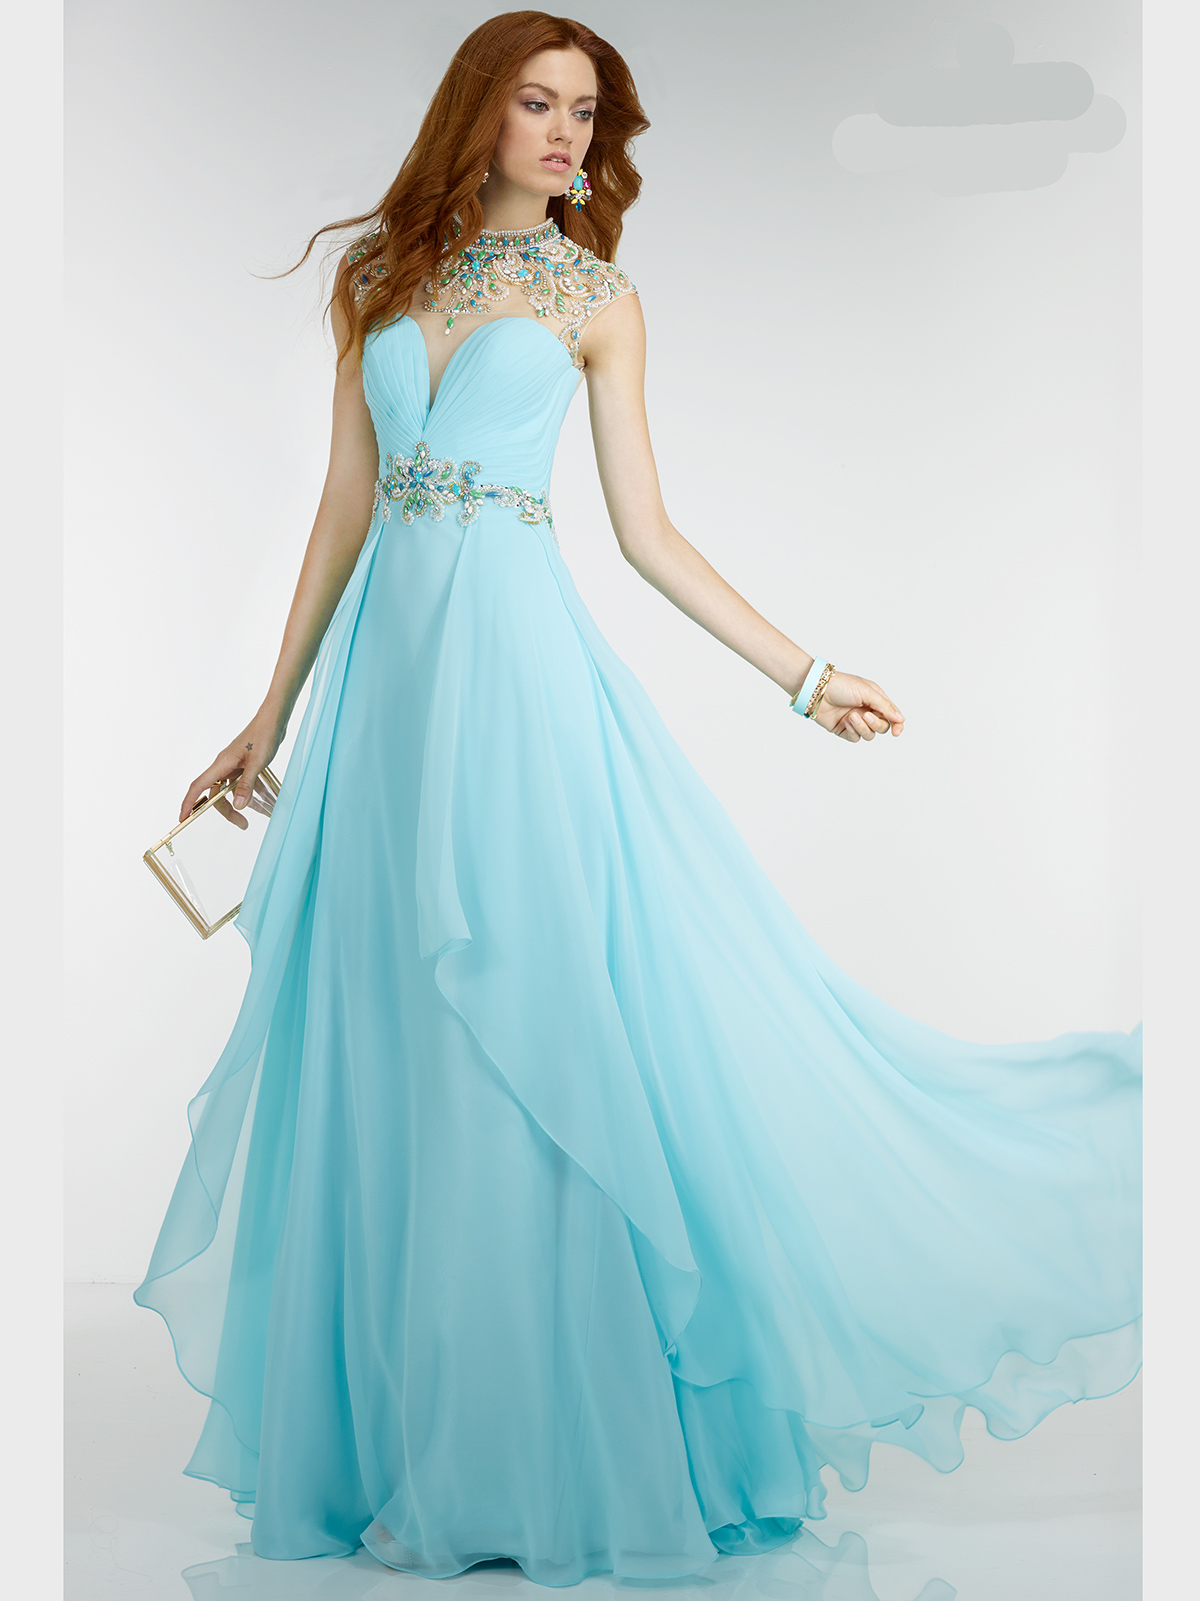 Teal Grecian Style Prom Dresses | Dress images